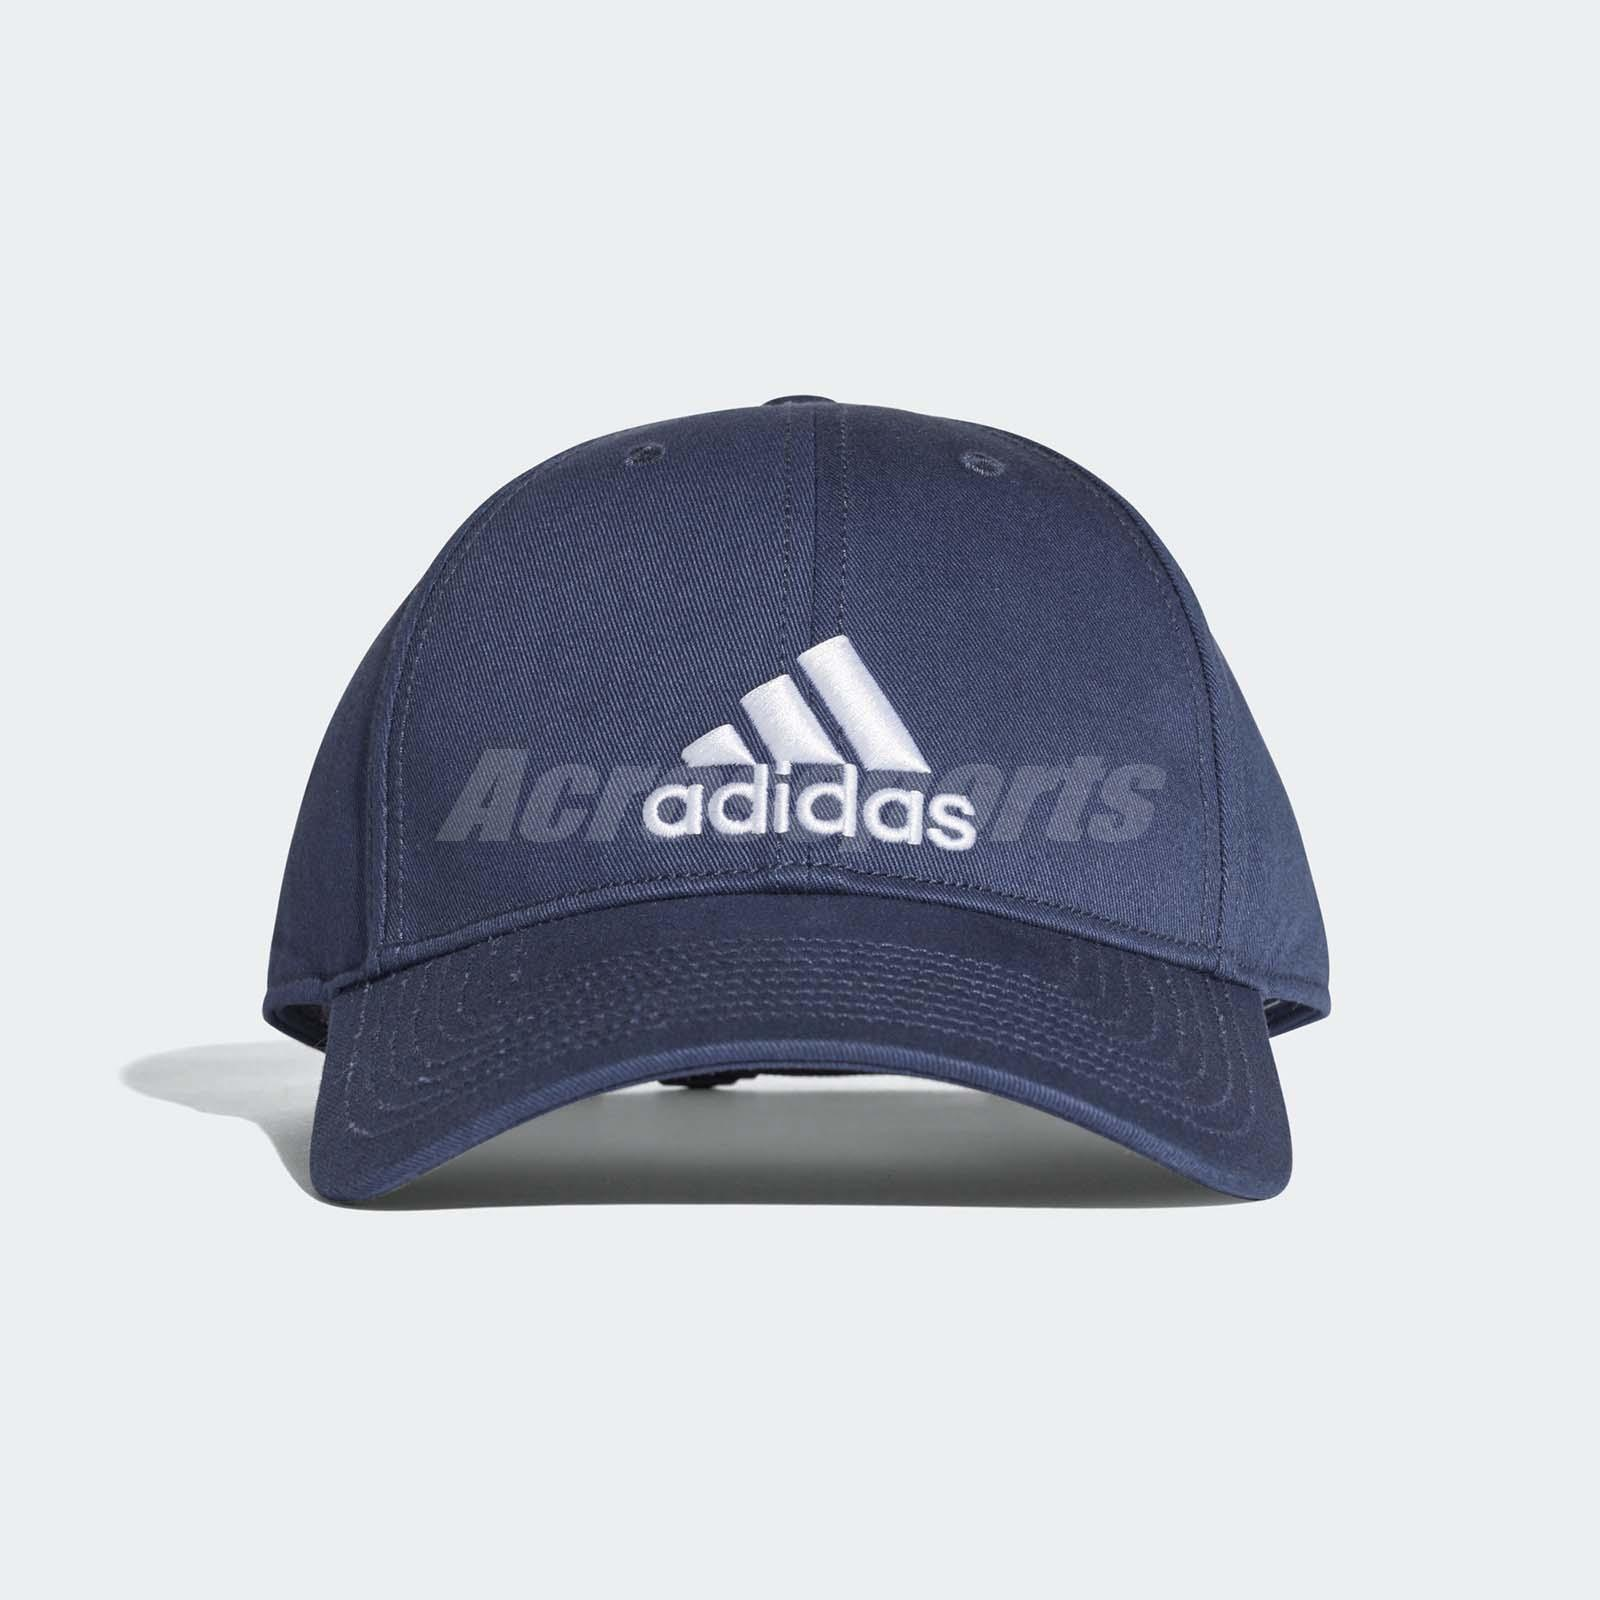 1f7439ba895 Details about adidas Unisex Classic 6-Panel Cap Running Sports Training Gym  Hat Blue CF6913